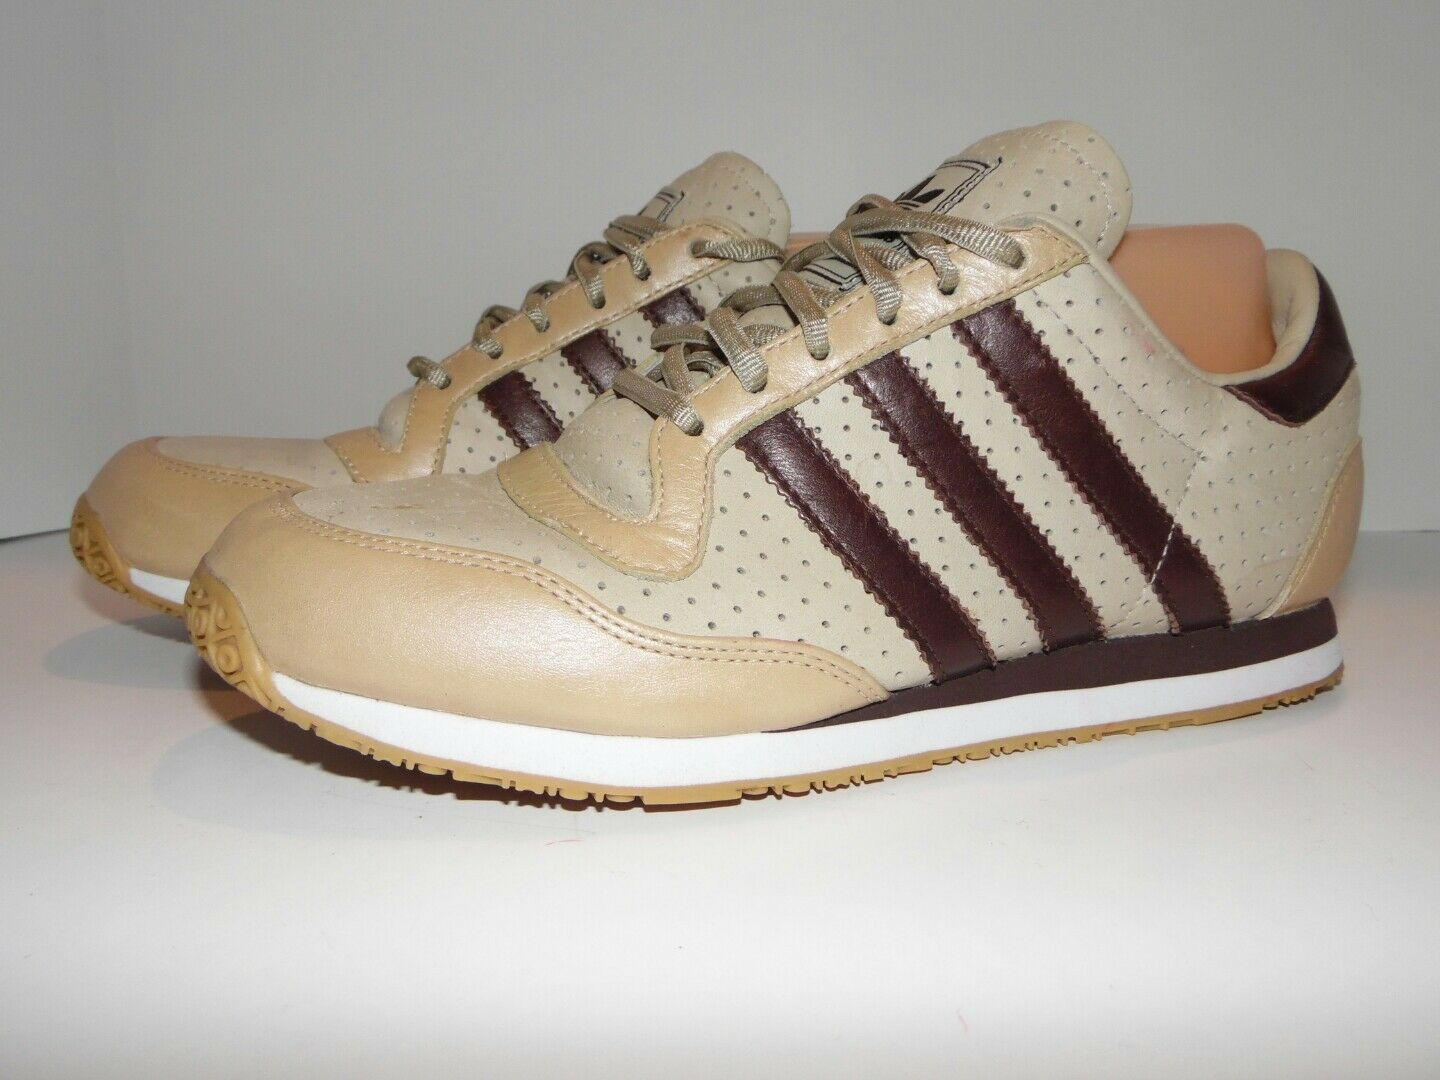 Adidas vintage leather tennis shoes size 7